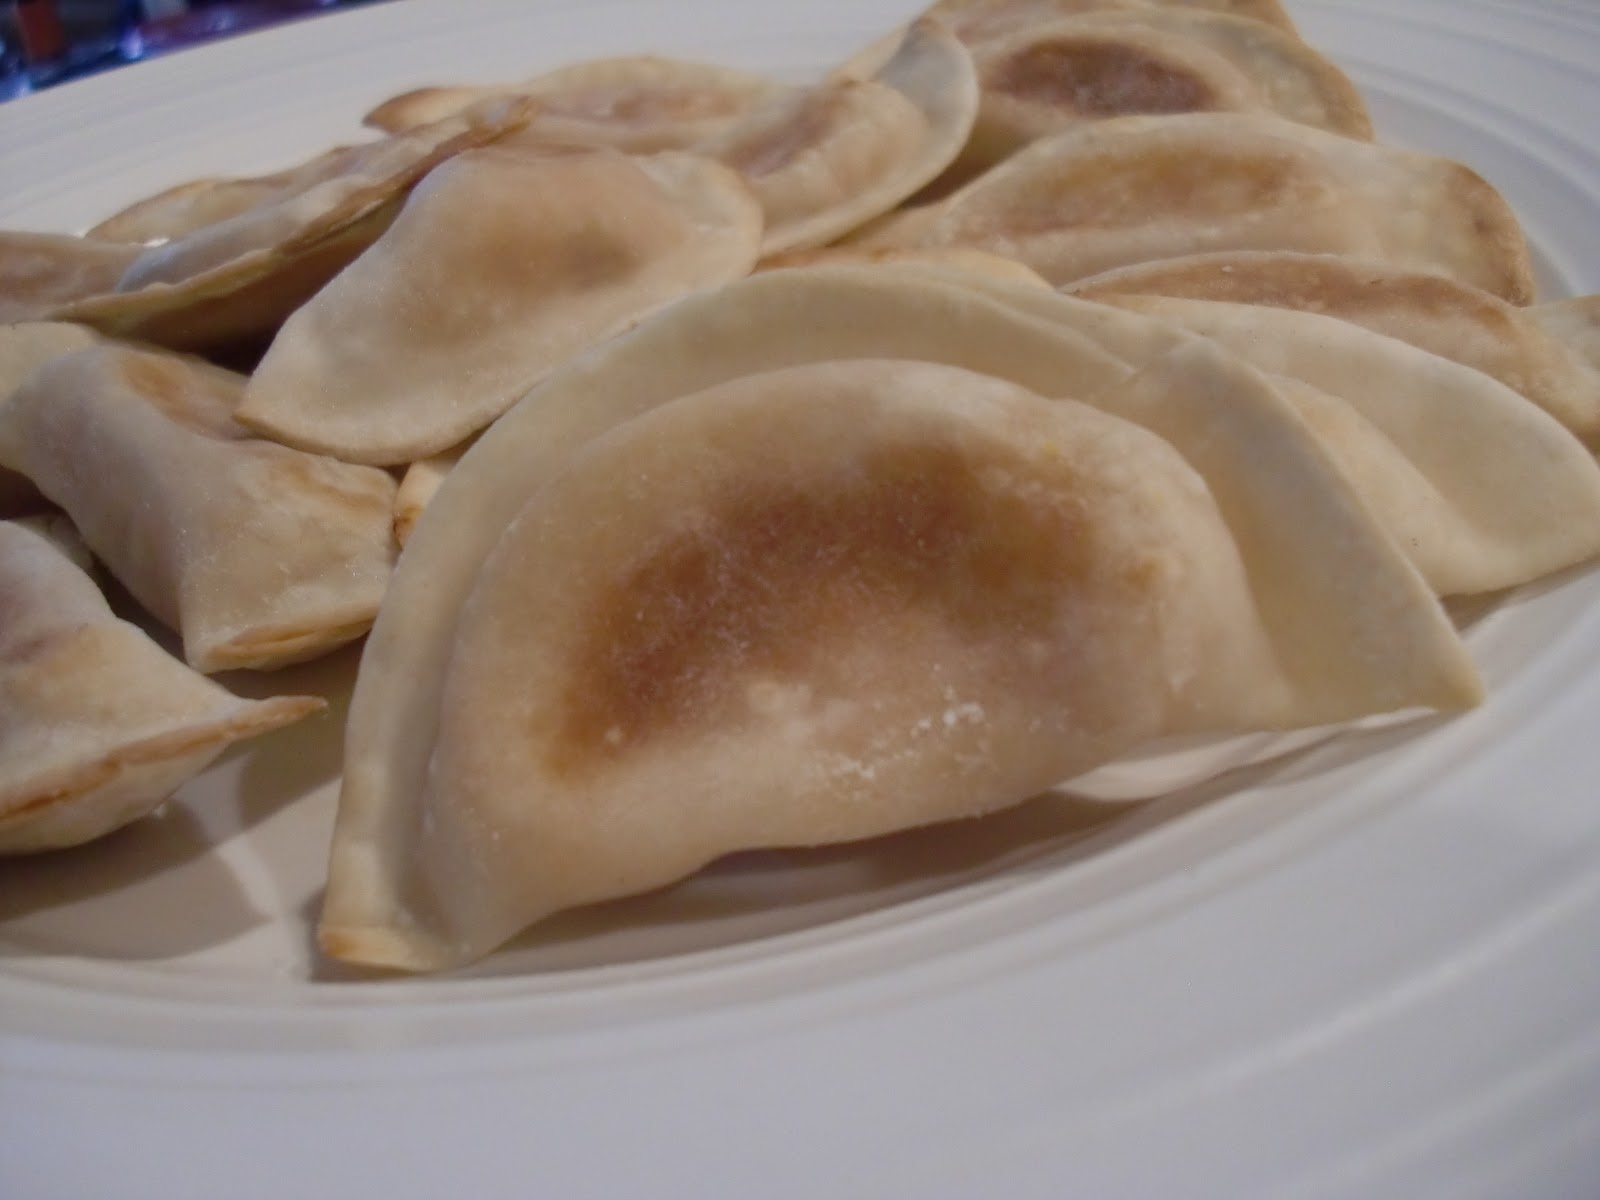 Sunday Snackday: Non-traditional Dumplings